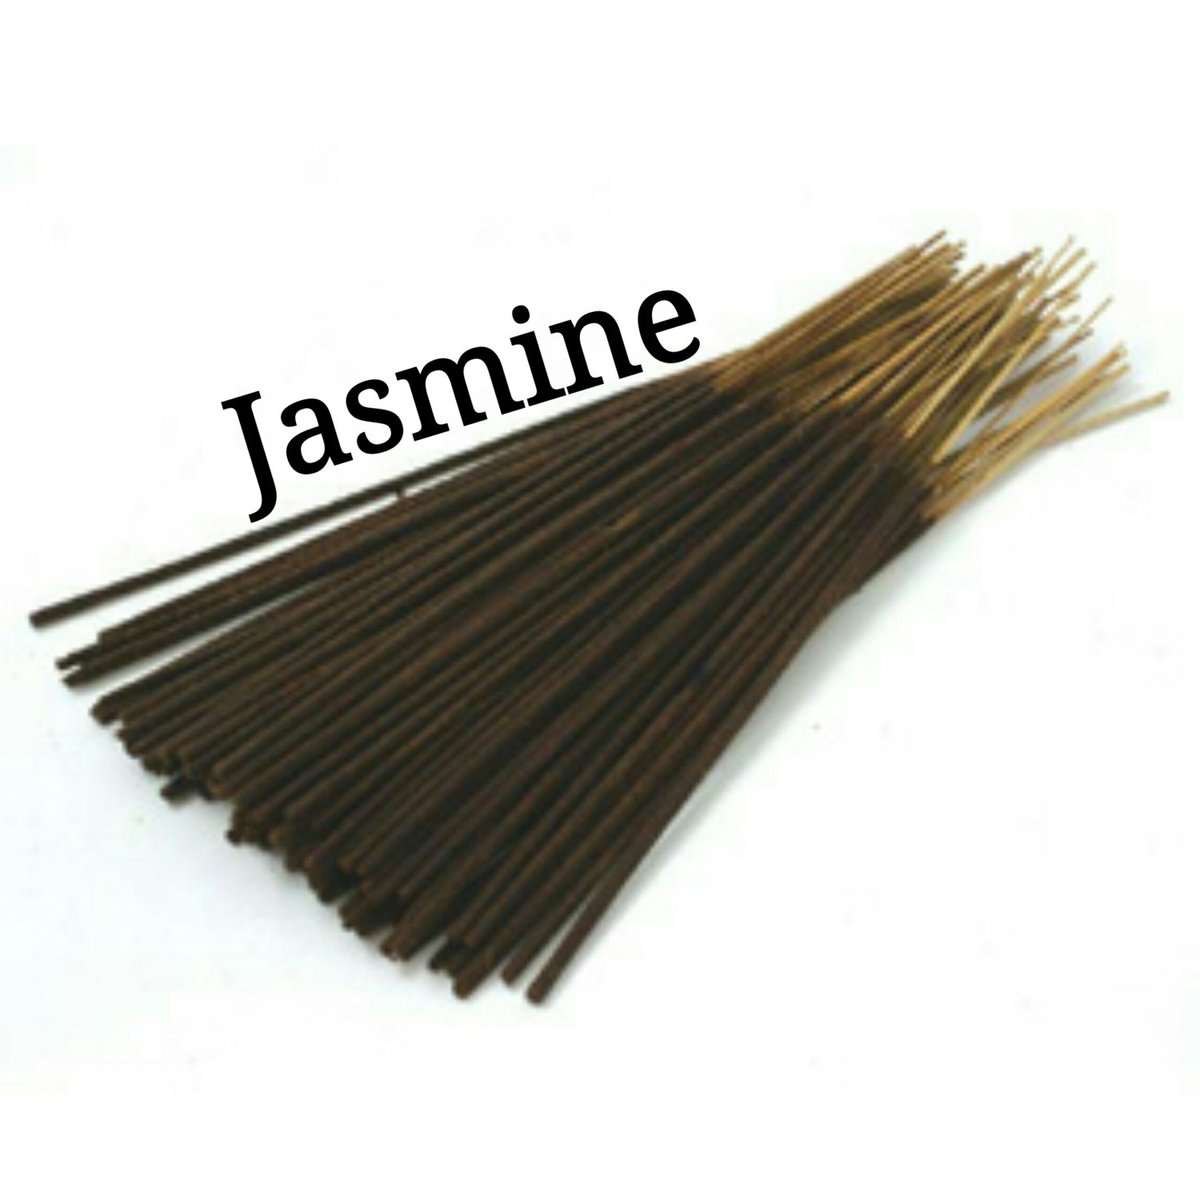 Incense Sticks | Jasmine | 30 Incense Sticks | Incense Bundle https://t.co/NjXo5jW8GP #Wedding #HomeFragranceOil #Etsy #Incense #AromatherapyOil #BlackFriday #HerbalRemedies #PerfumeBodyOils #CyberMonday #GiftShopSale #CeremonyIncenses https://t.co/WxEbyjxK3Z